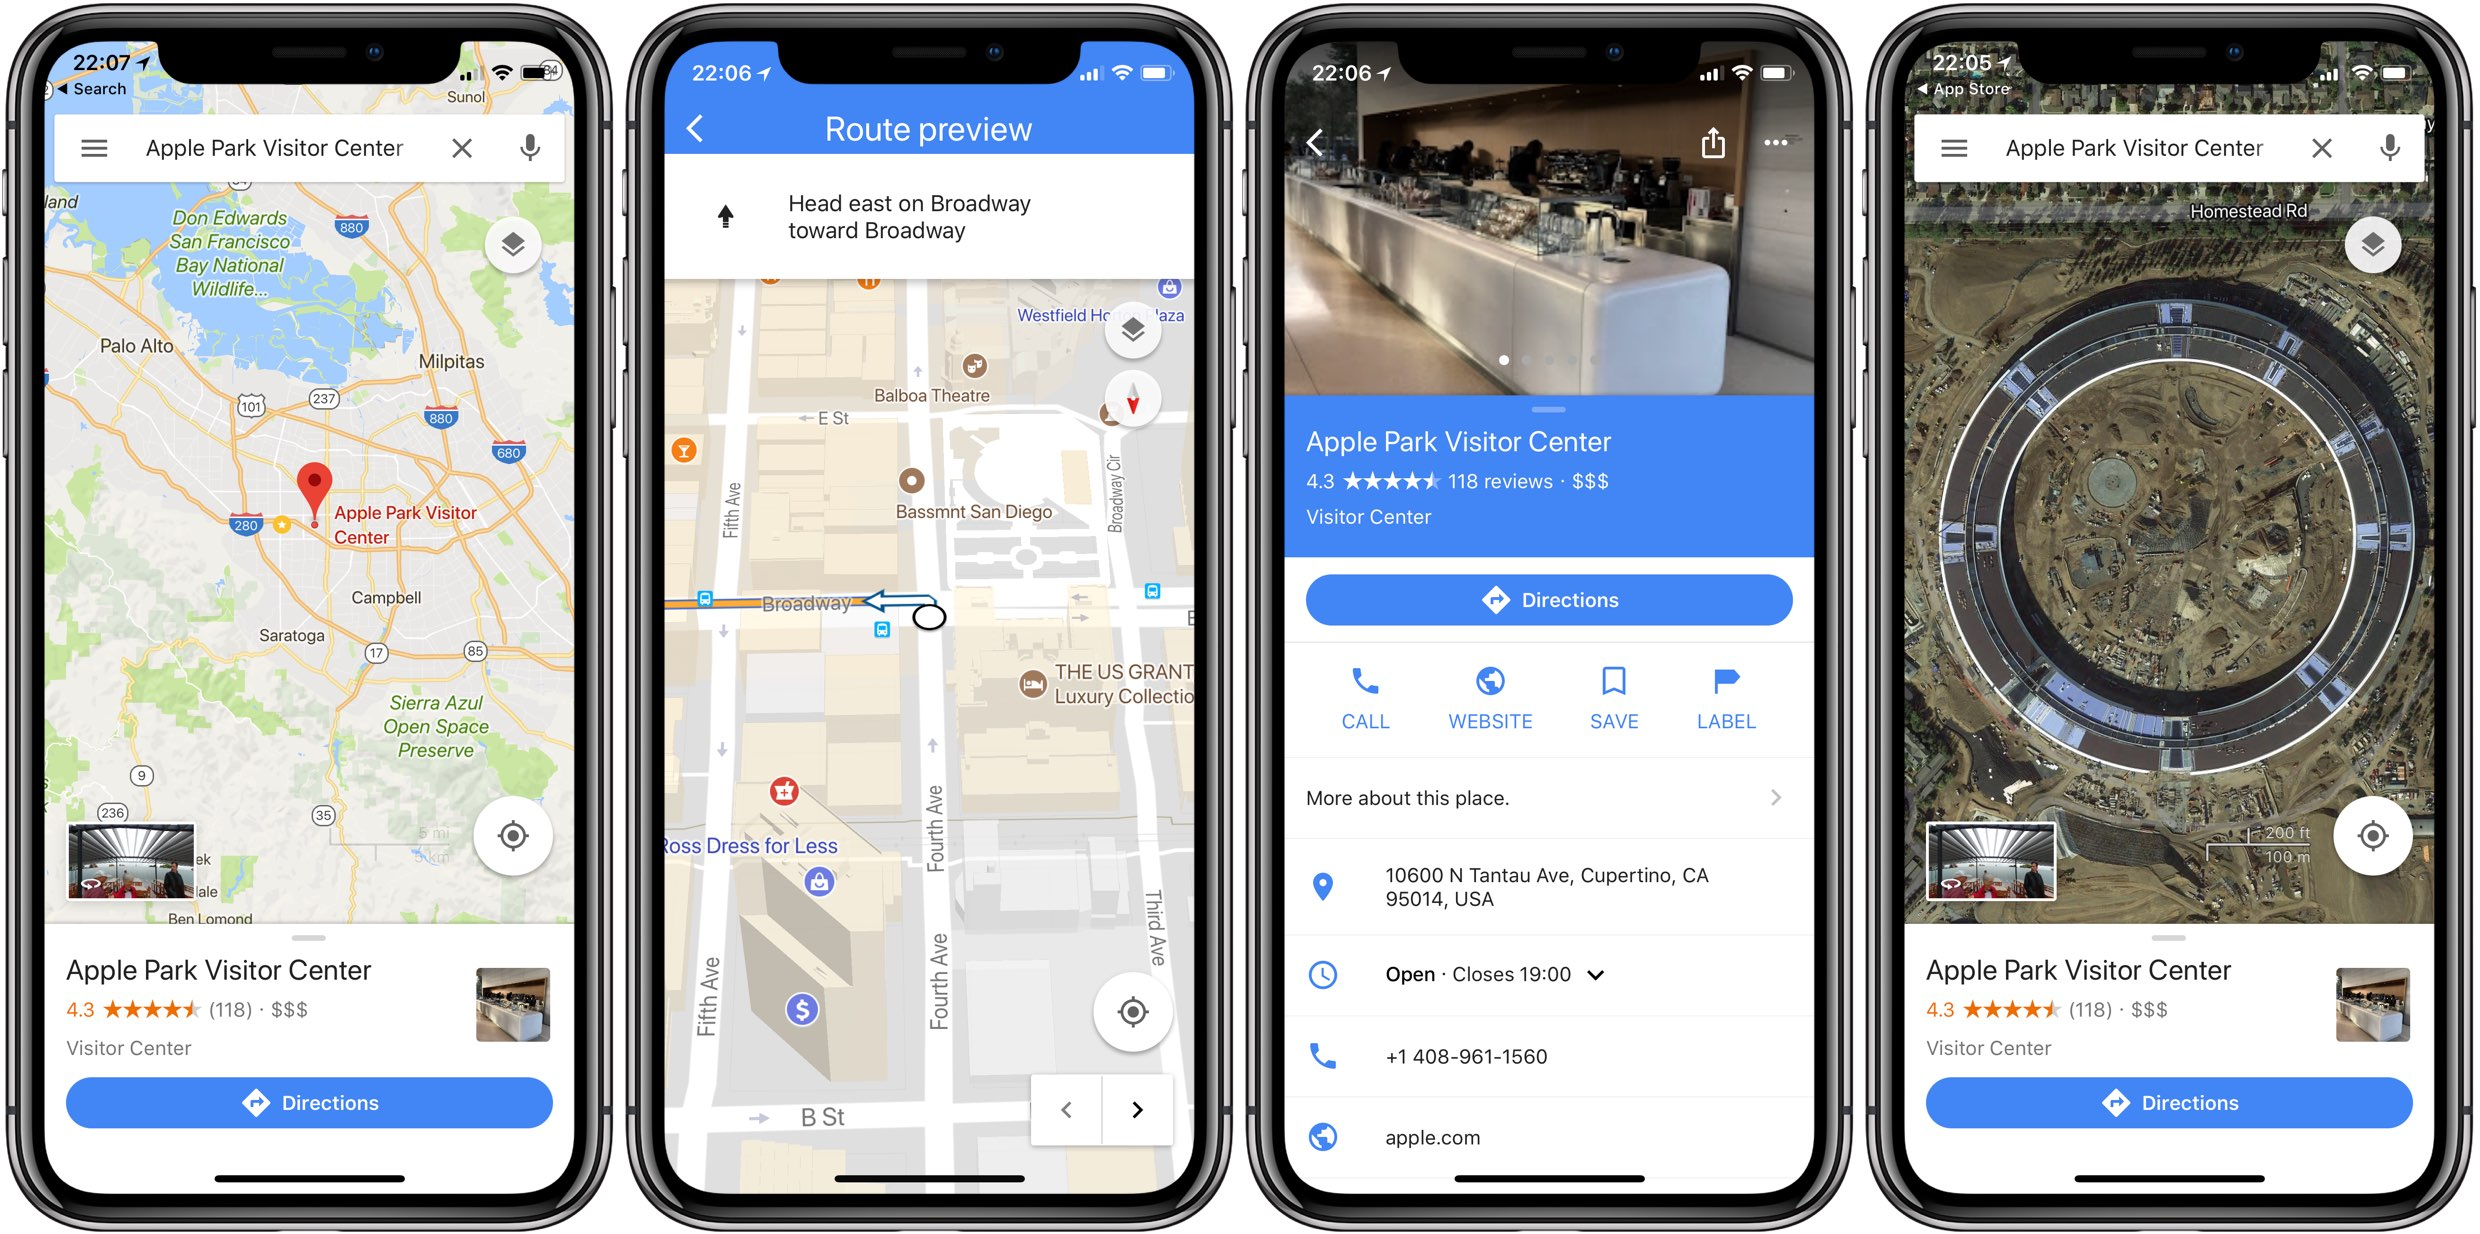 Google Maps App Supports iPhone X With Edge-to-Edge OLED Display